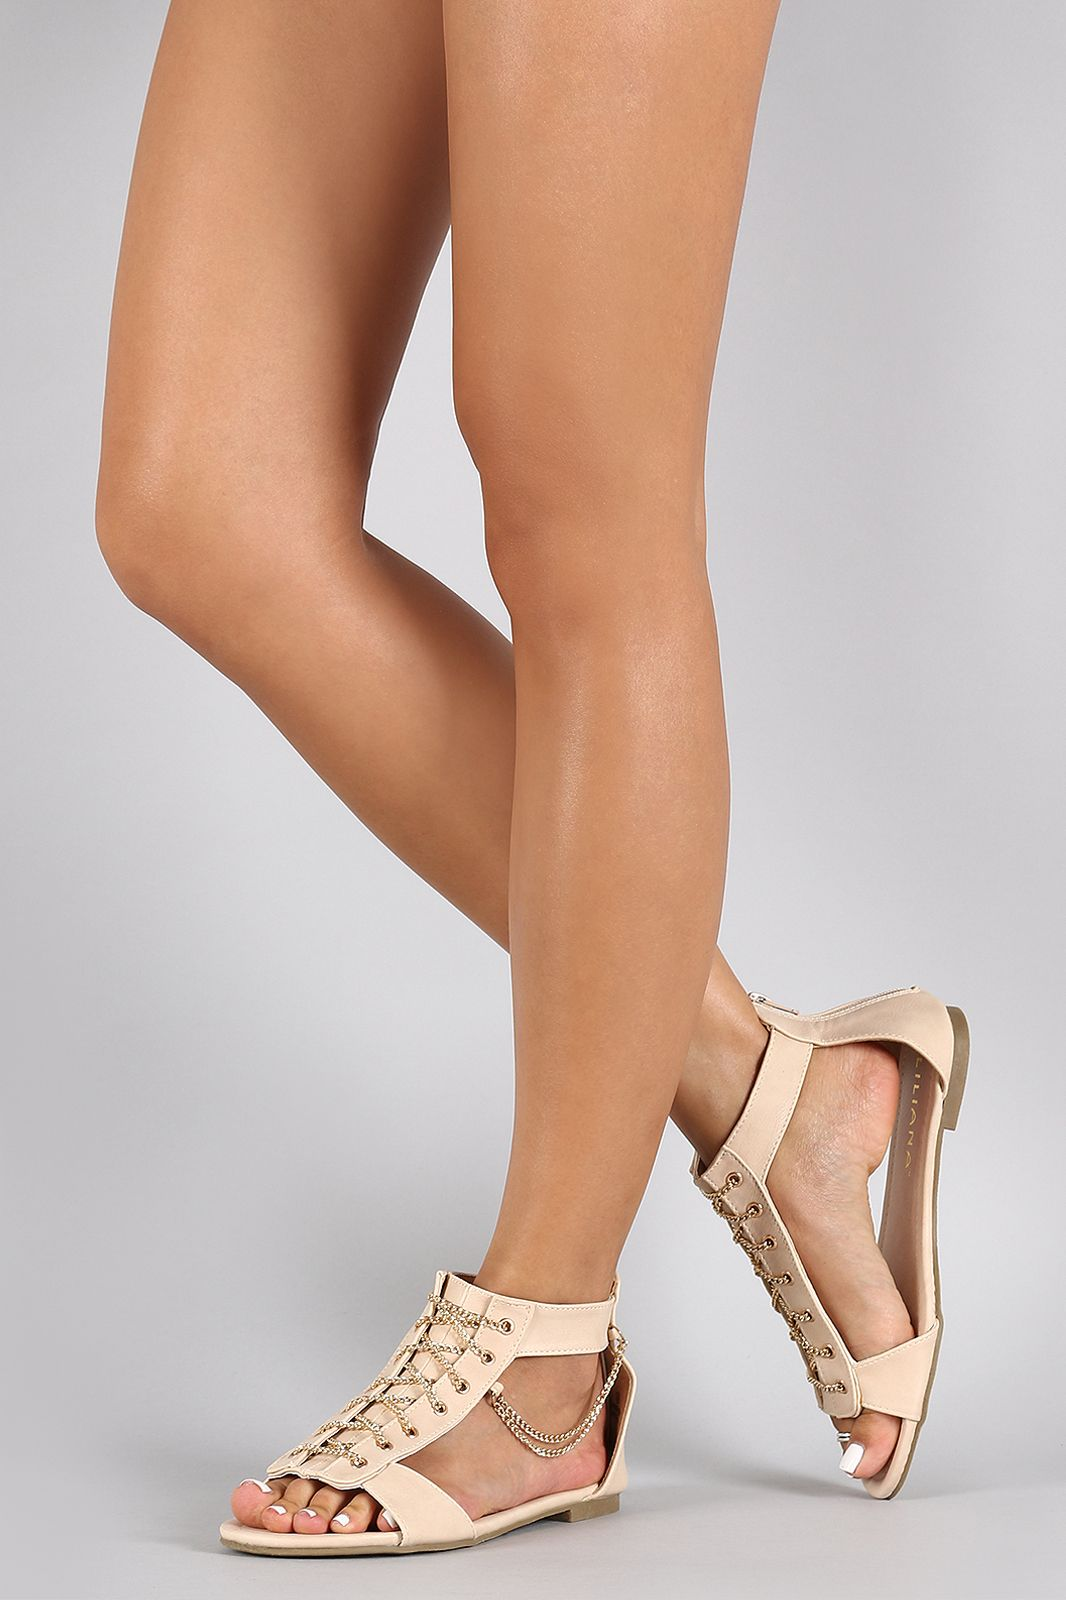 Madden Girl Sandals Nude Natural Zoeyy Wedge Strappy Size